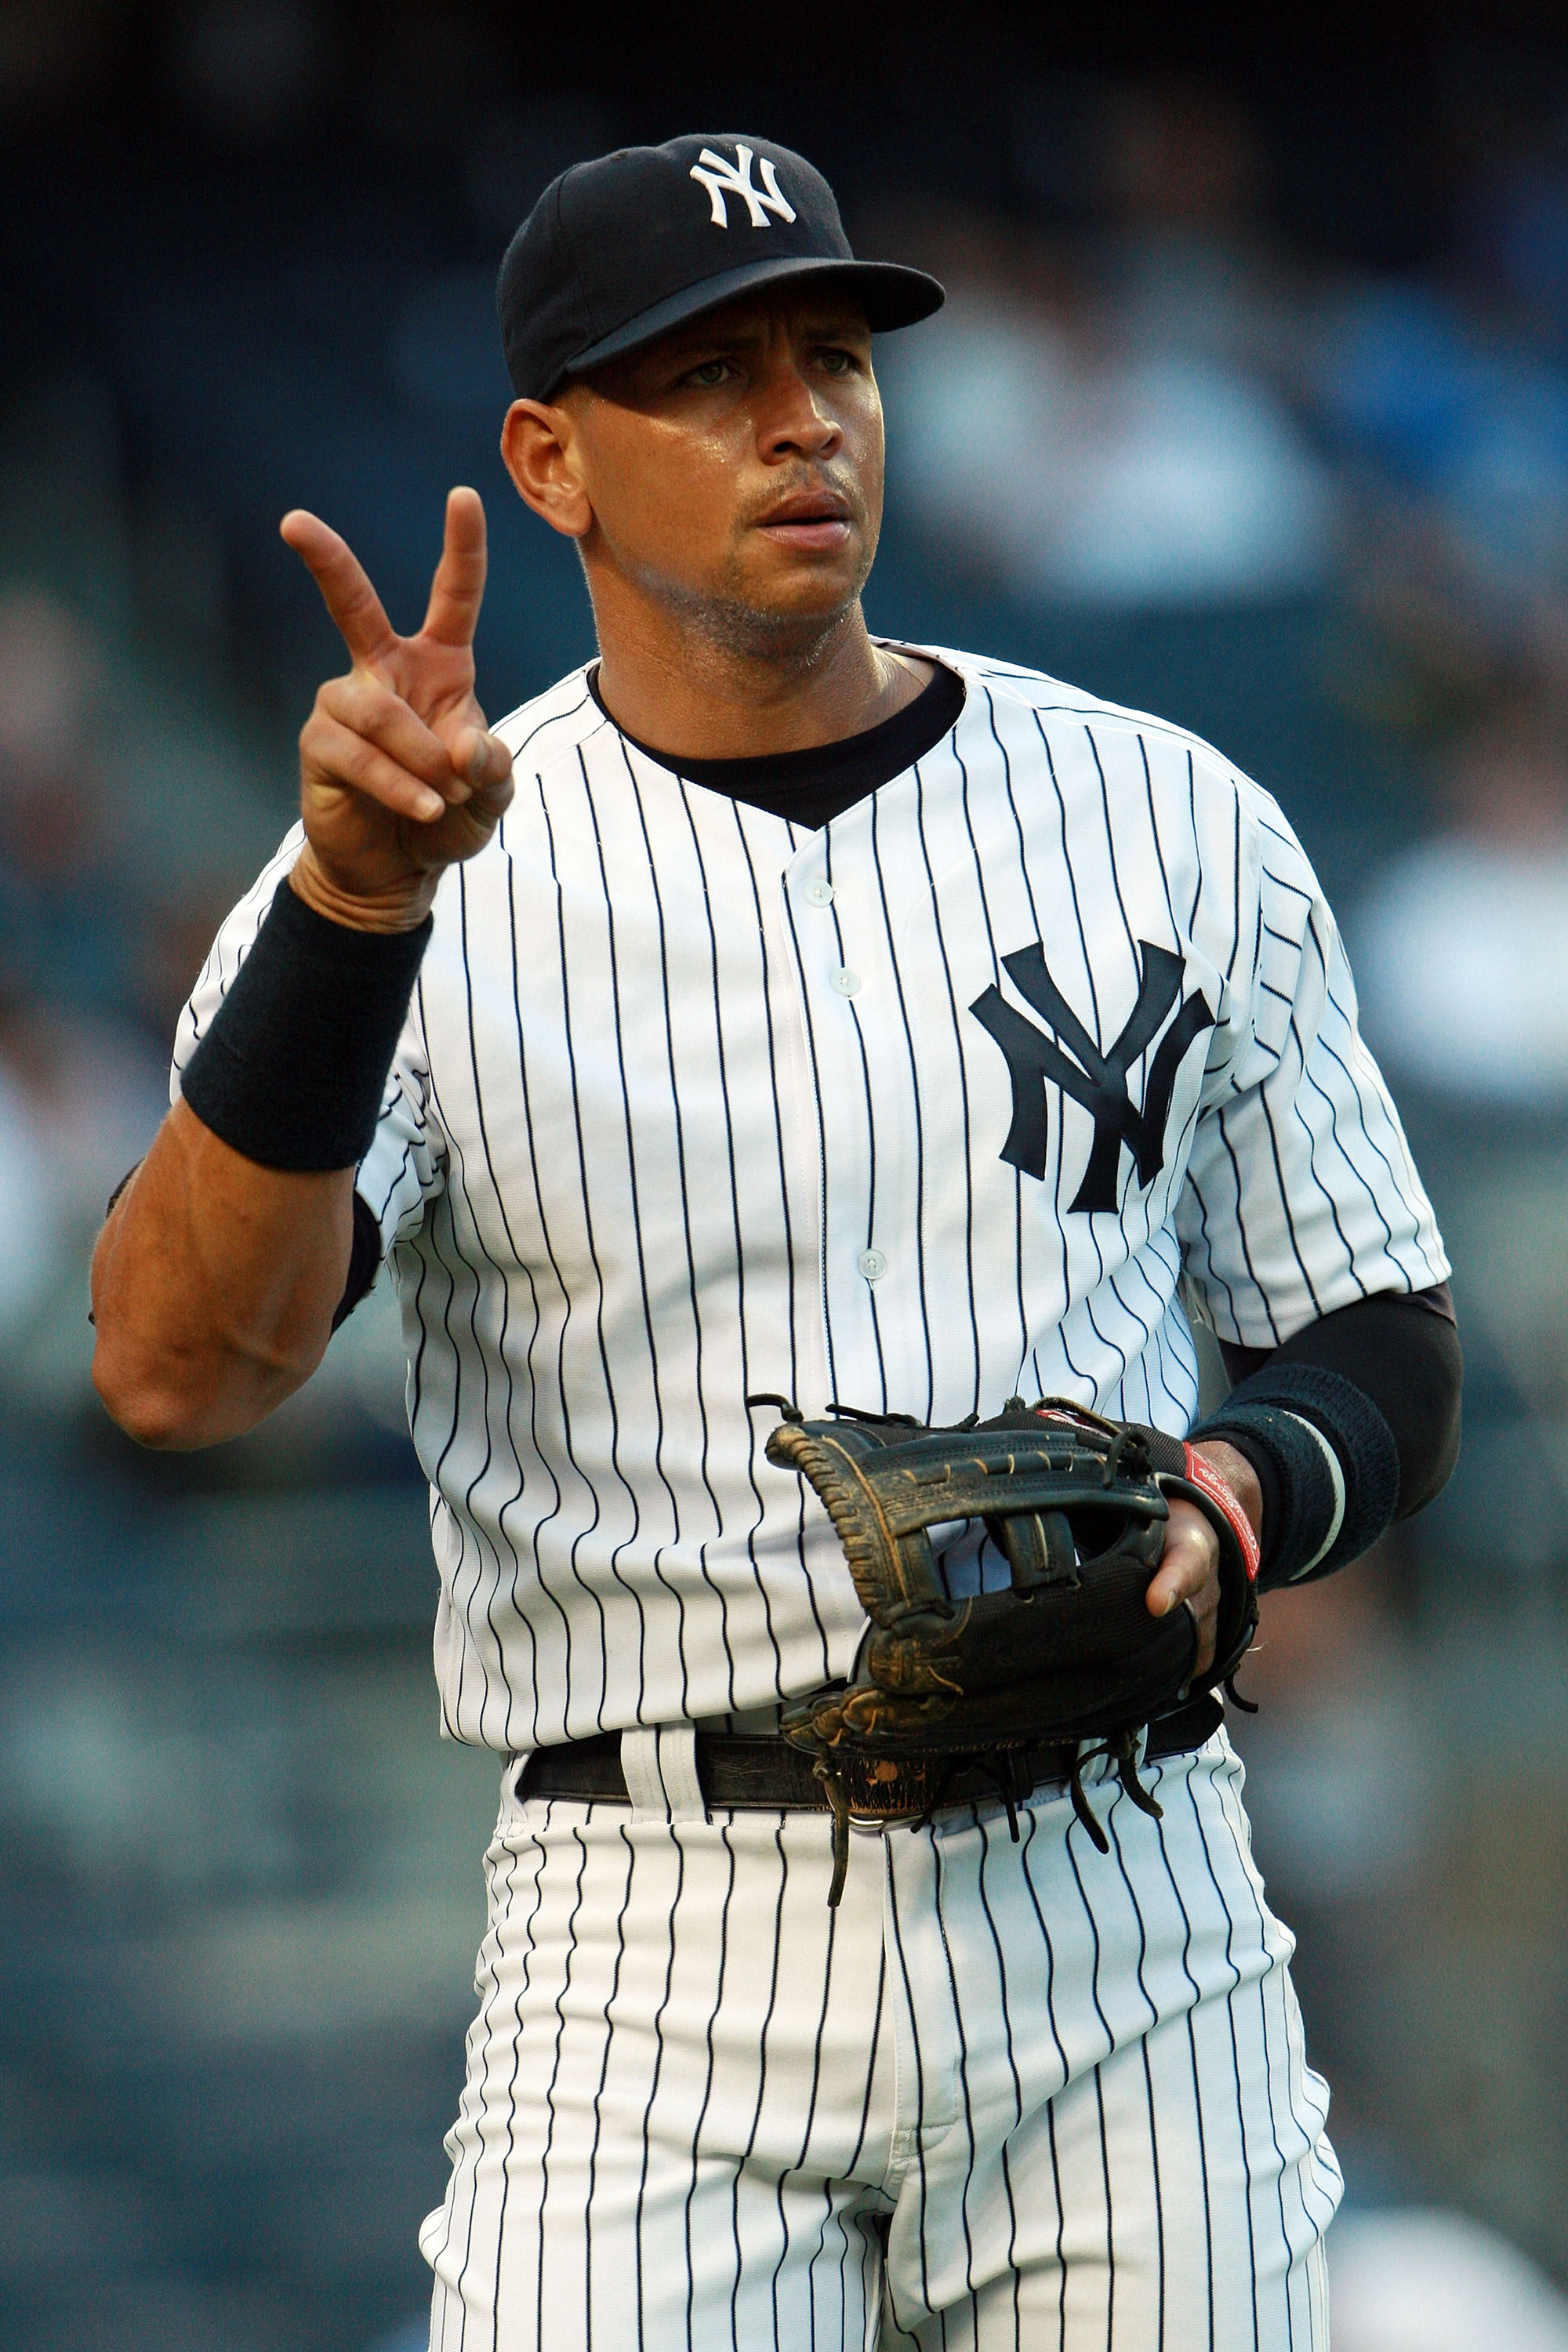 NEW YORK, NY - MAY 24:  Alex Rodriguez #13 of the New York Yankees gestures before playing against the Toronto Blue Jays at Yankee Stadium on May 24, 2011 in the Bronx borough of New York City.  (Photo by Michael Heiman/Getty Images)